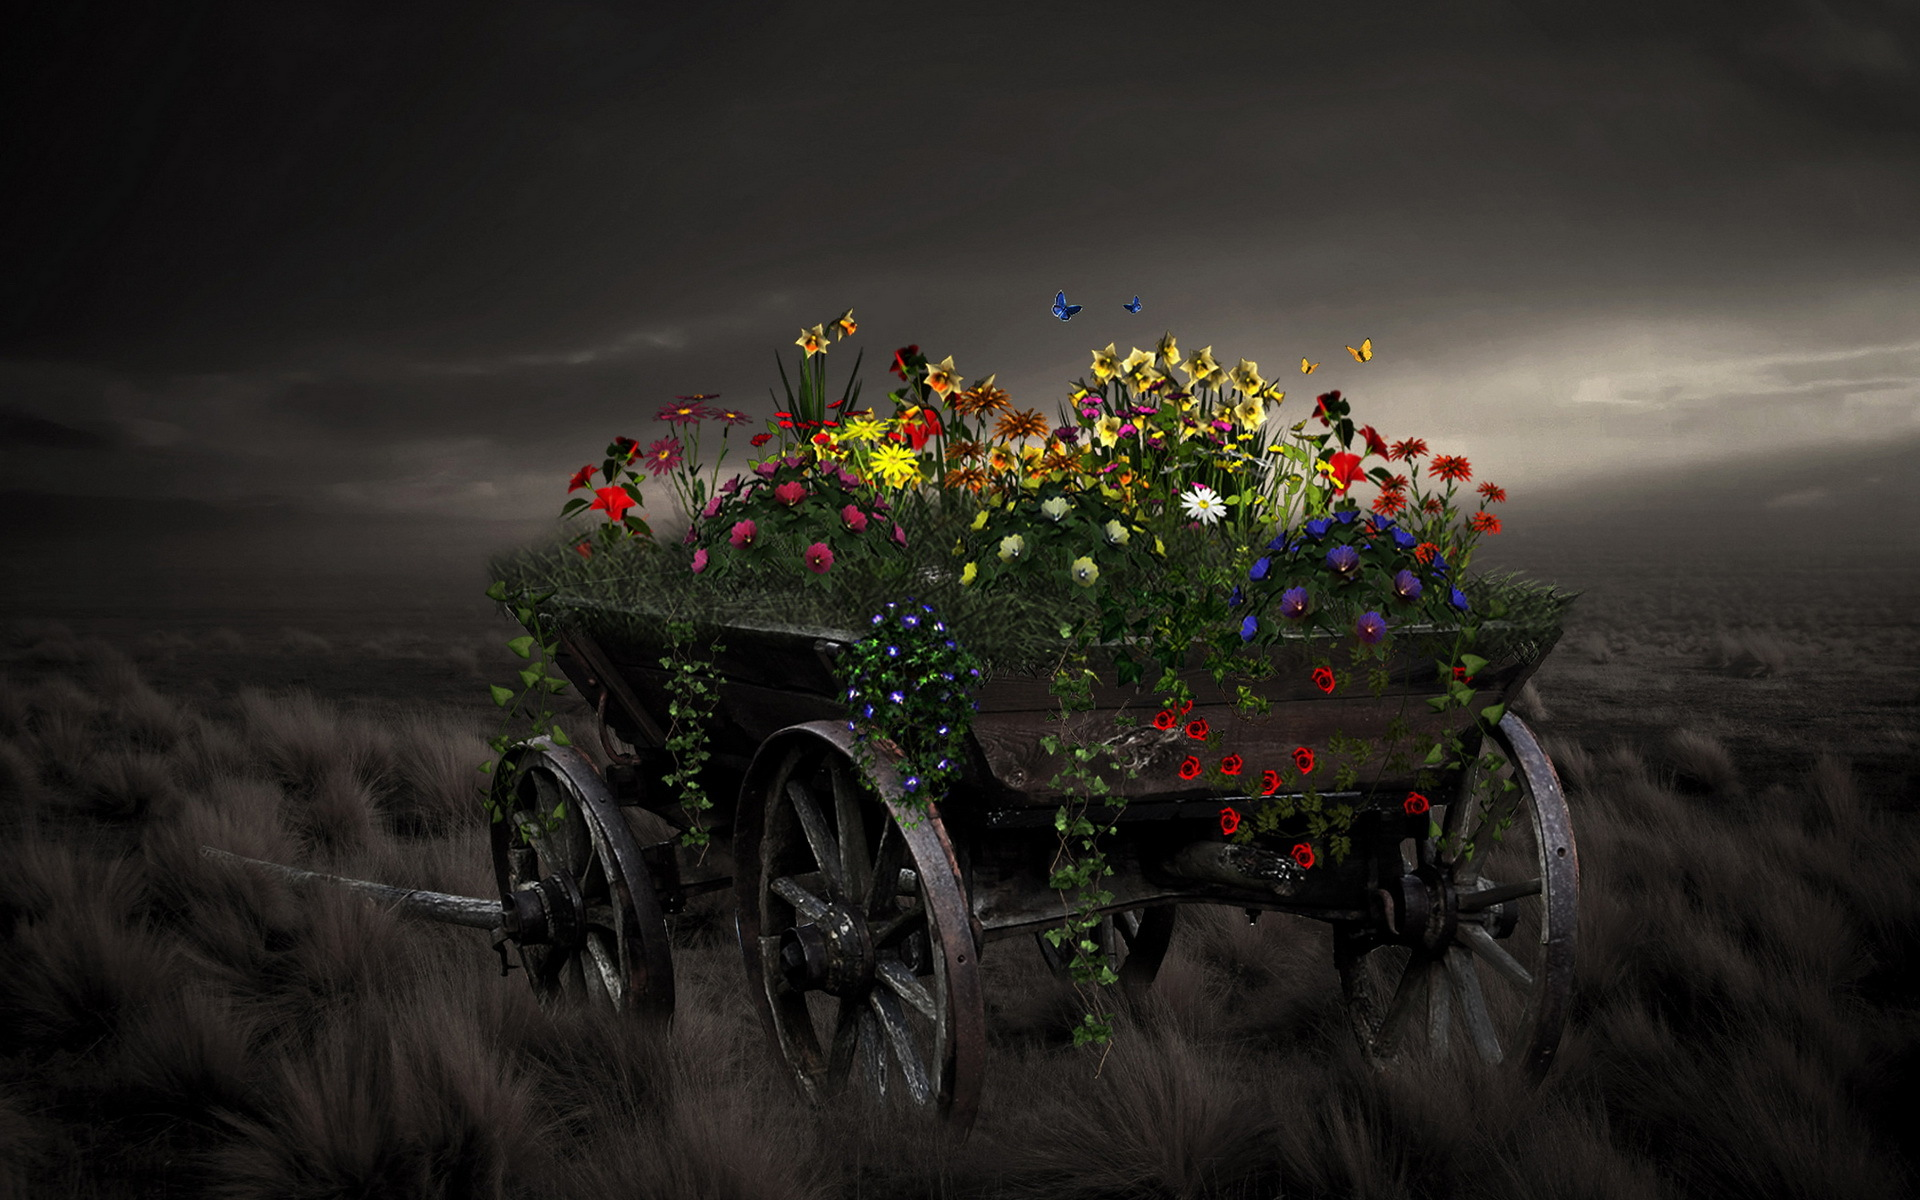 Flower wagon dark field wallpapers flower wagon dark for Where can i purchase wallpaper